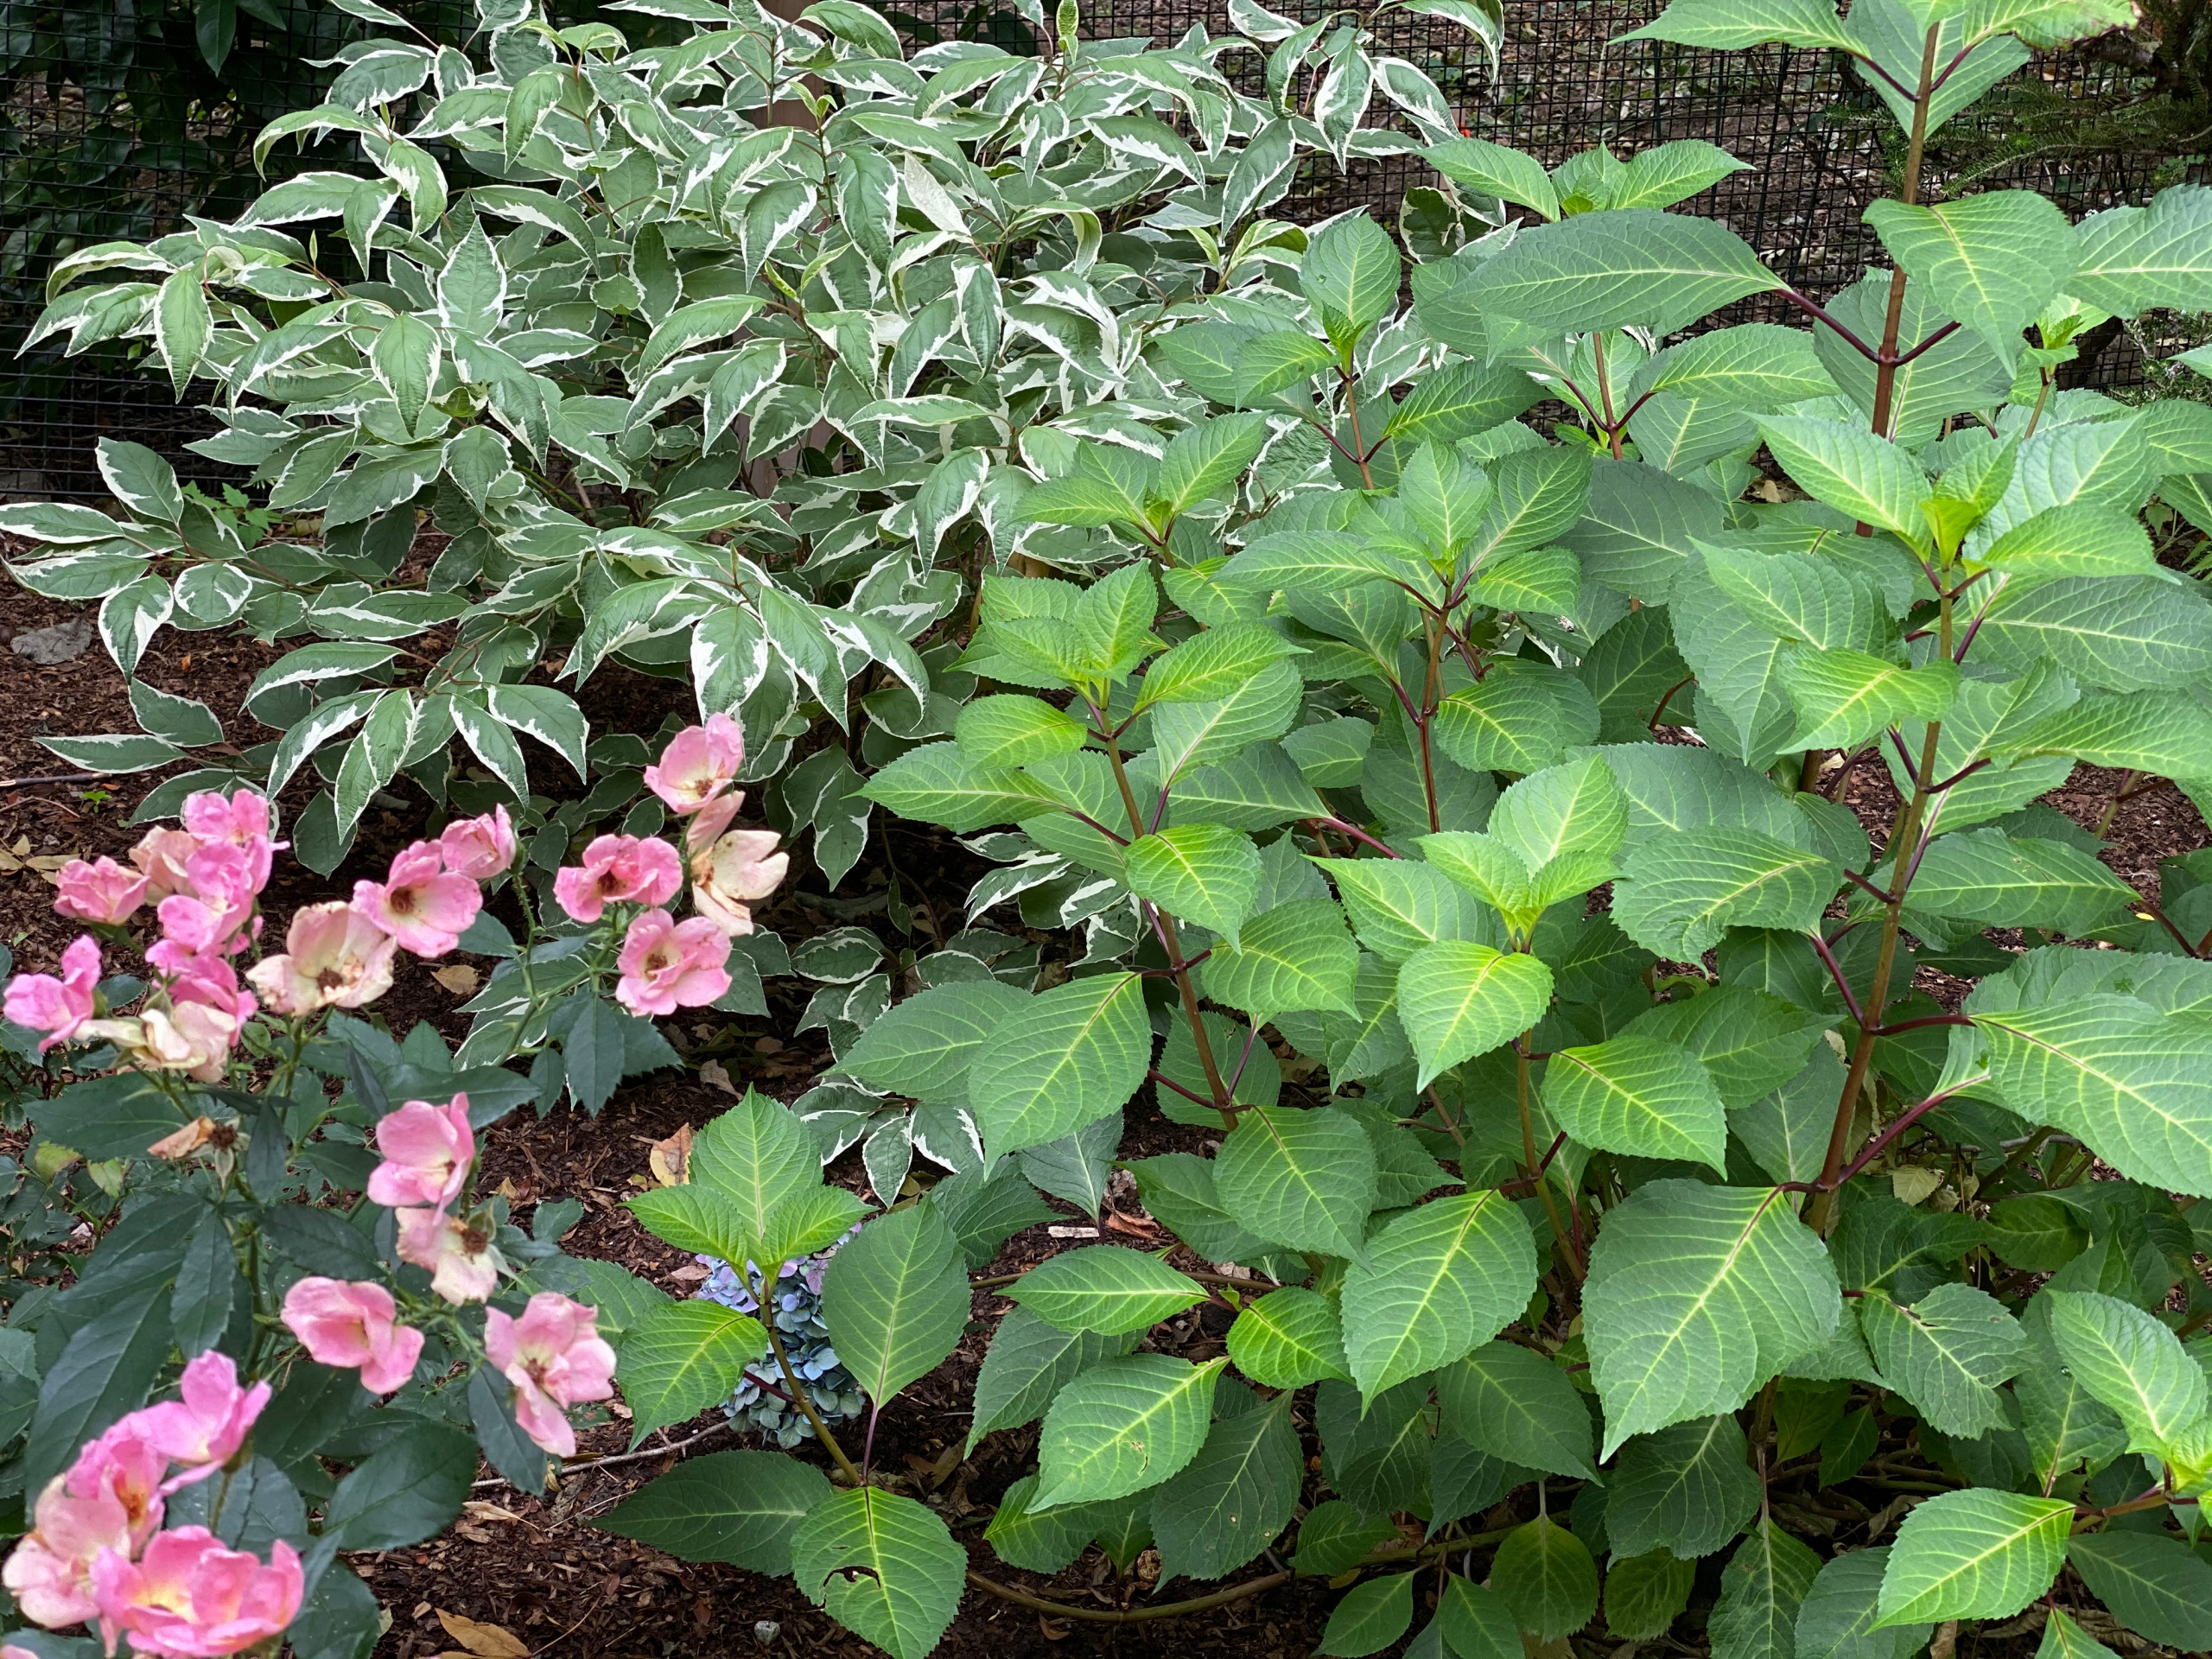 pink knockout rose, variegated red twig dogwood, hydrangea